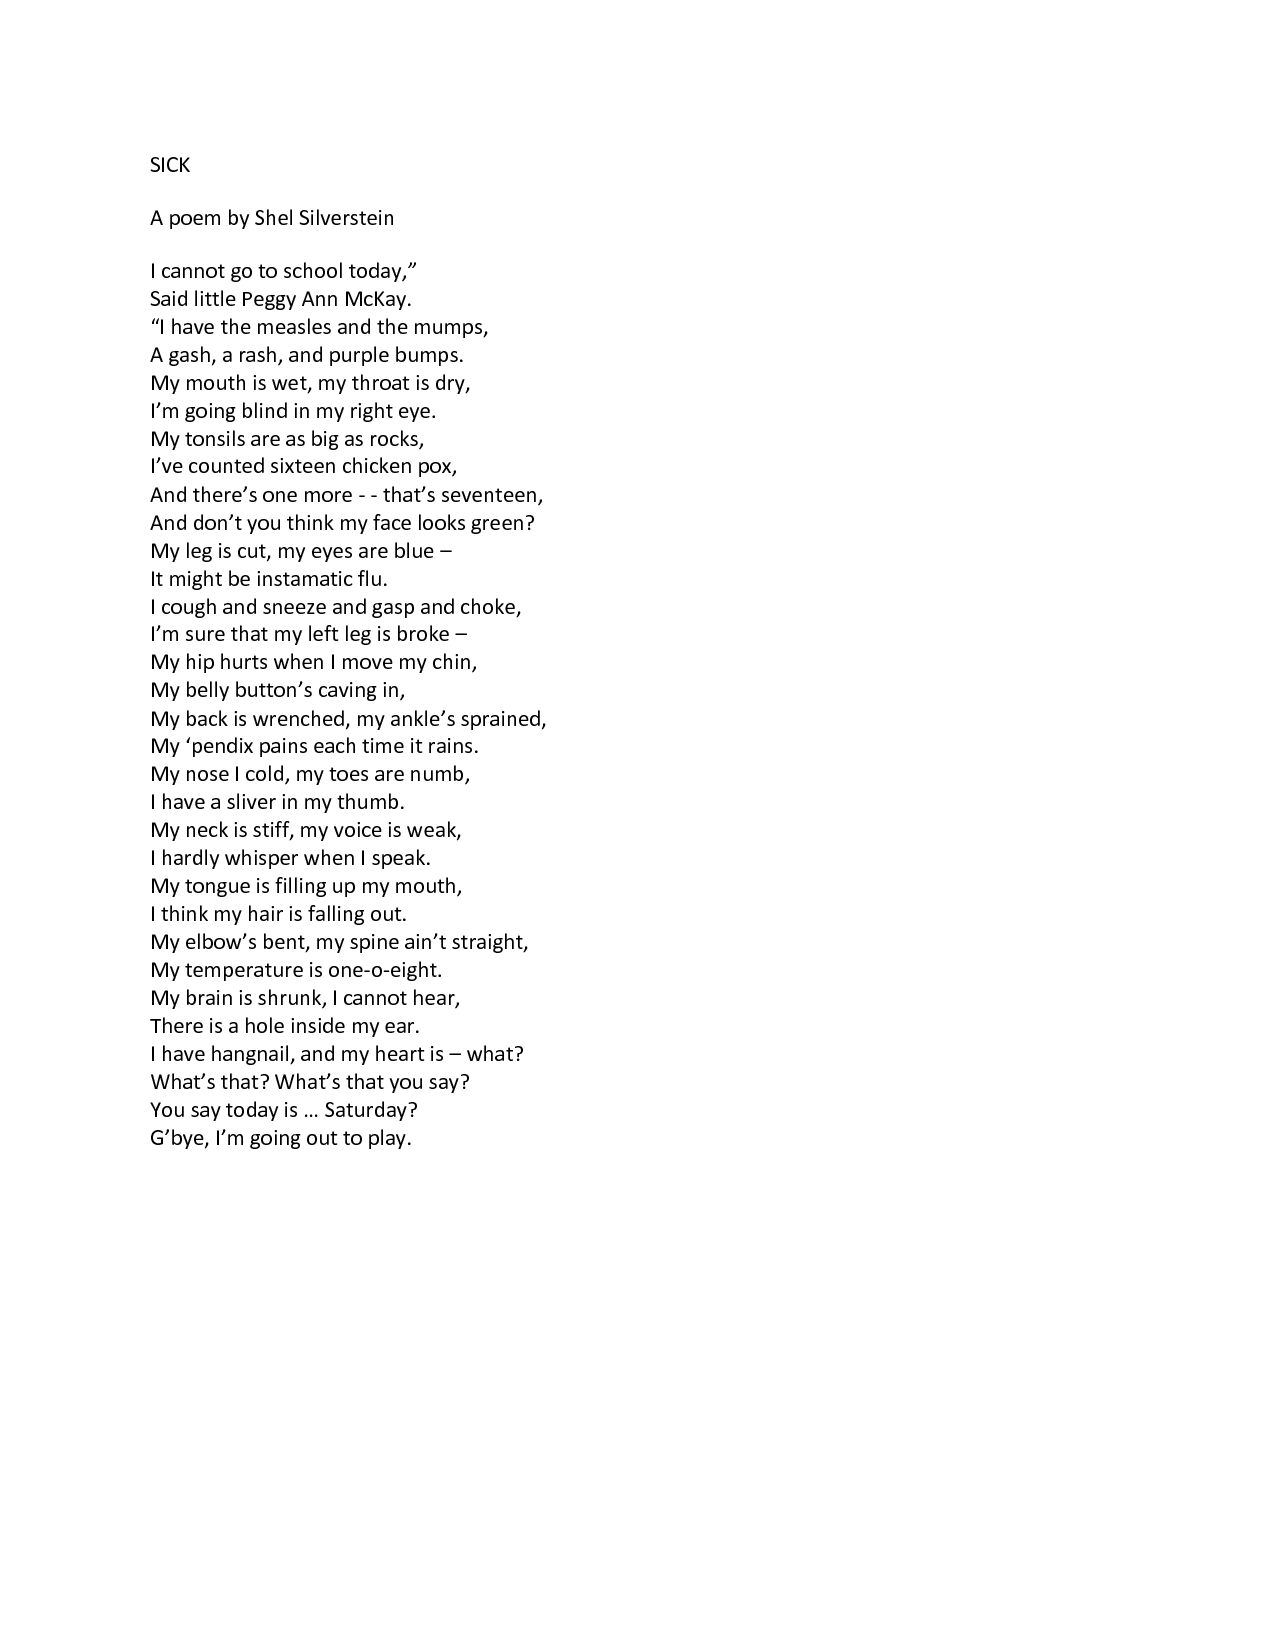 THE SICKNESS | Poetry | Shel silverstein poems, Poems